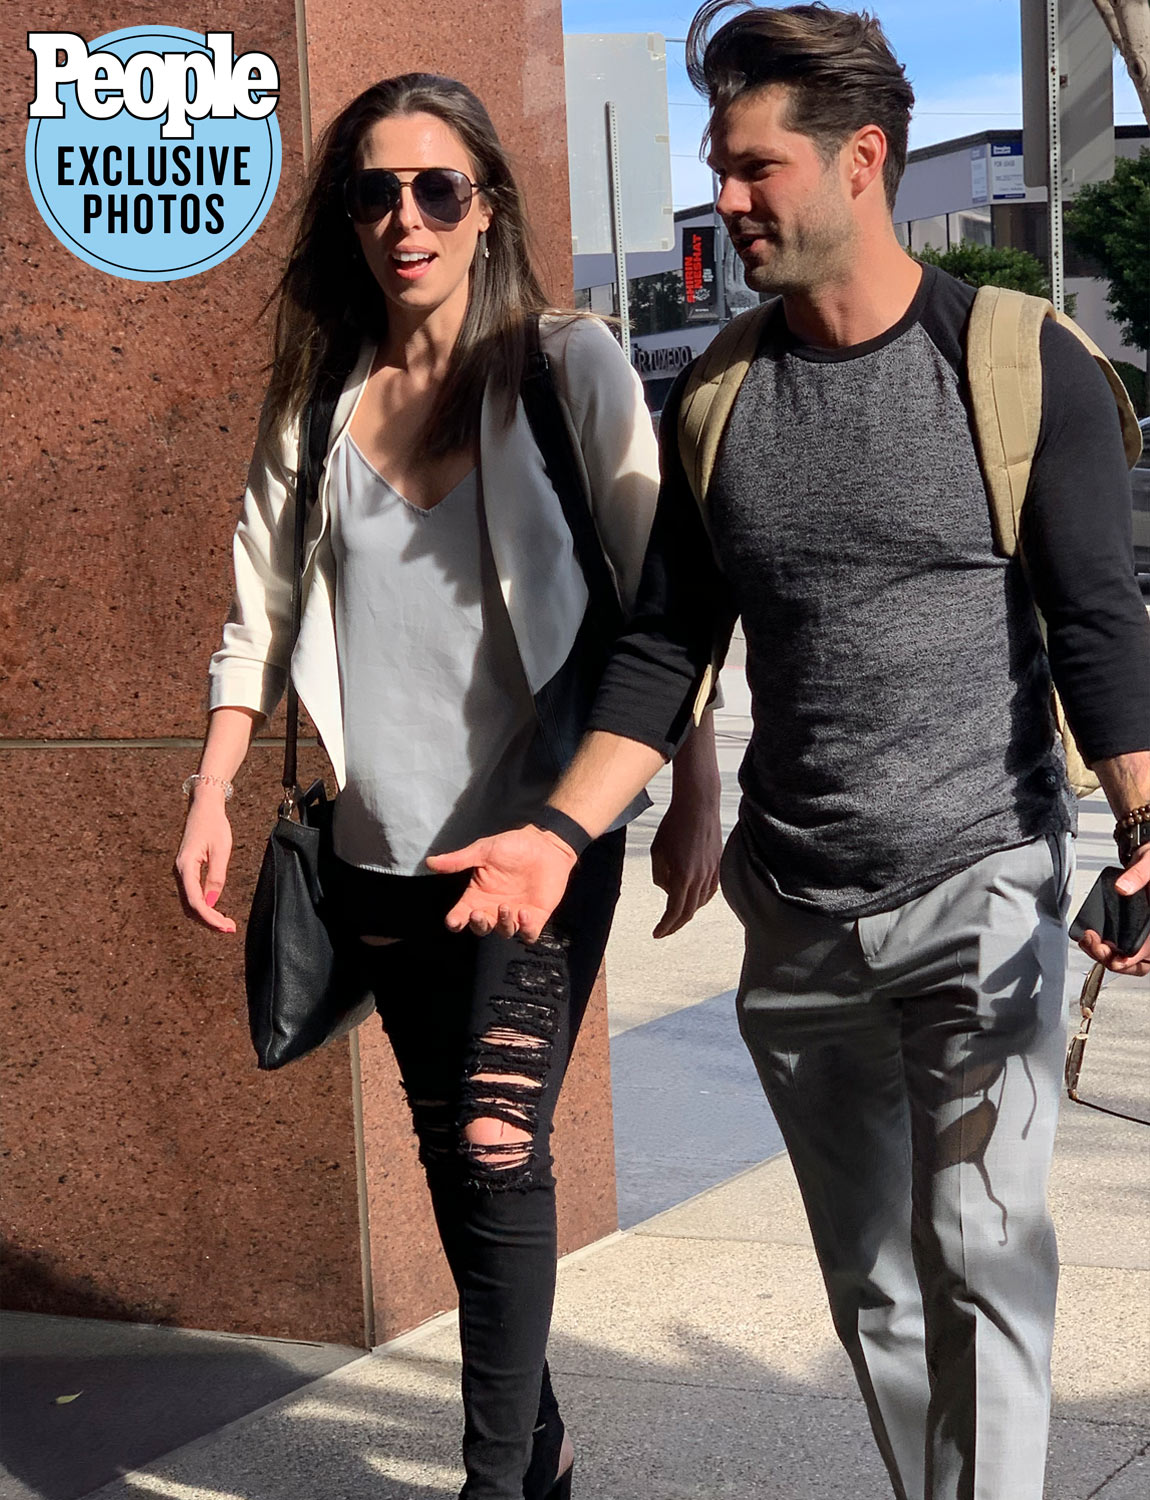 Married at First Sight's Mindy Shiben and Zach Justice relationship update